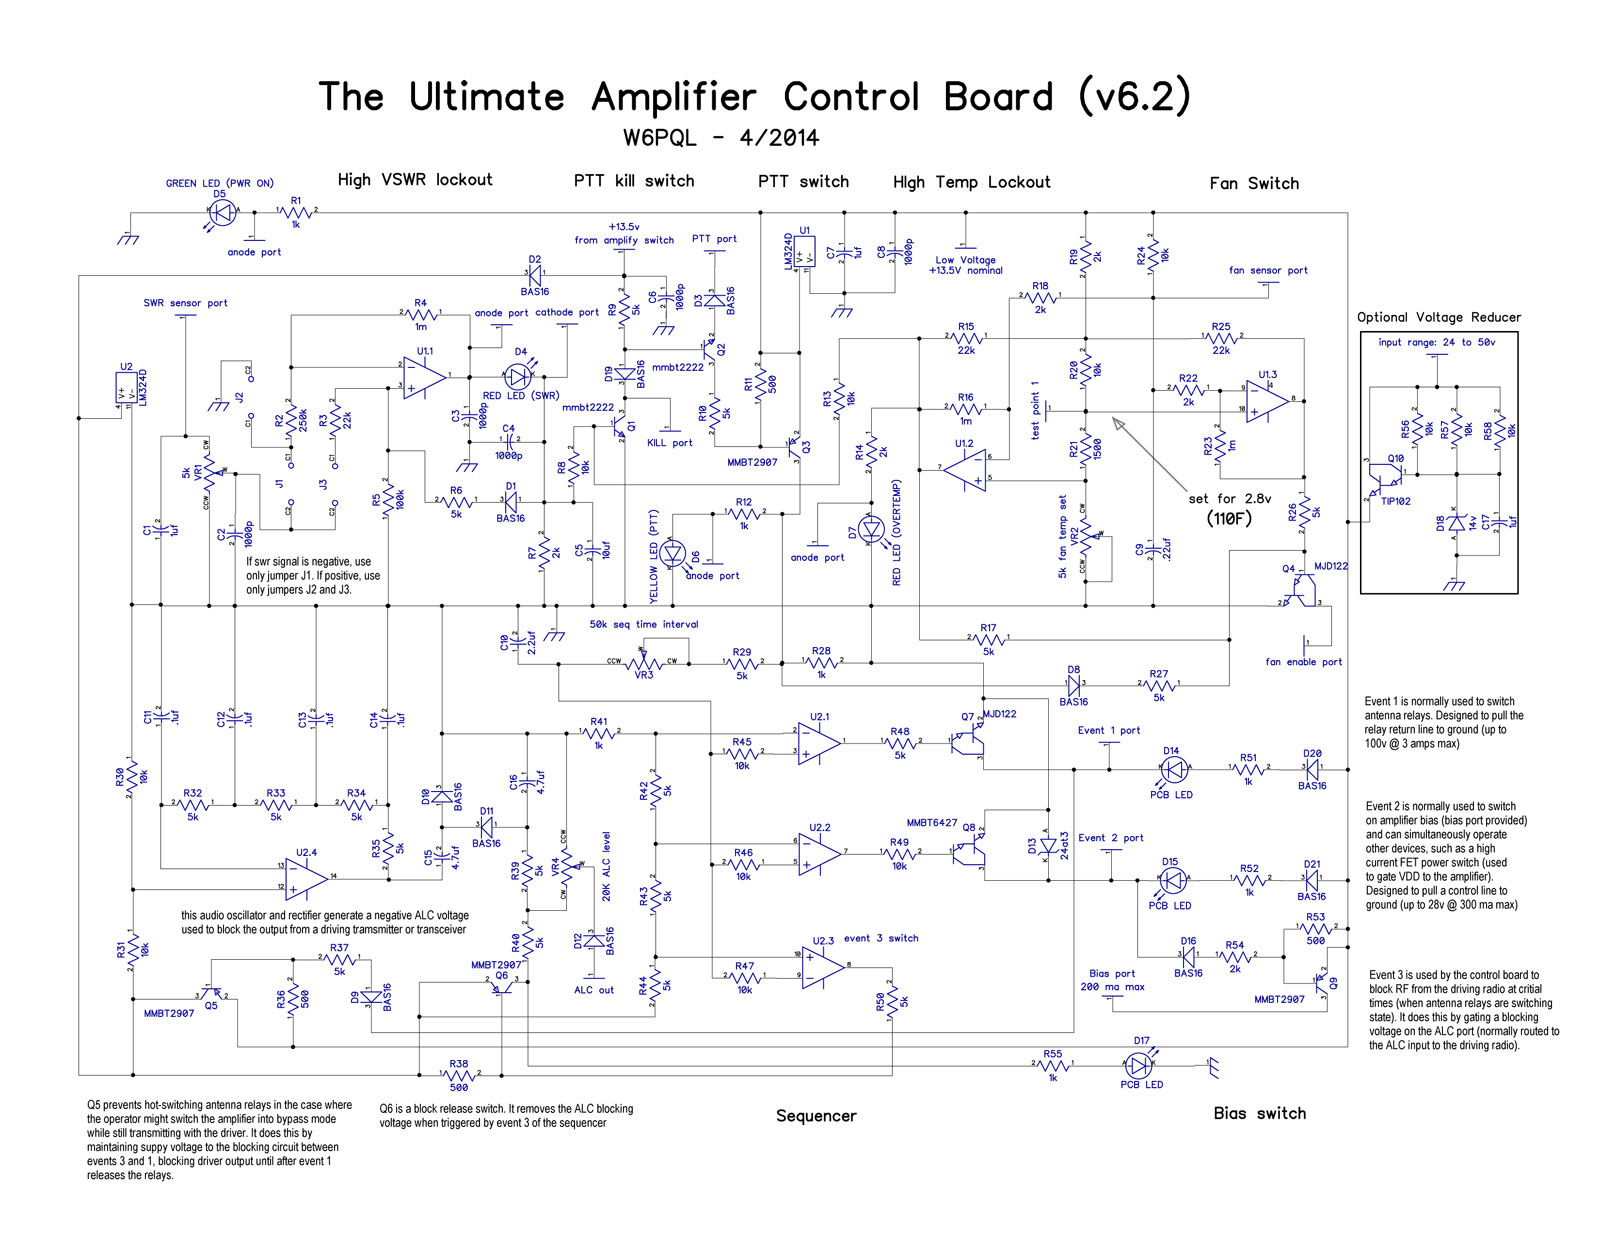 Amplifier Control Board Power Switchover Relay Here Is The Schematic For Version 62